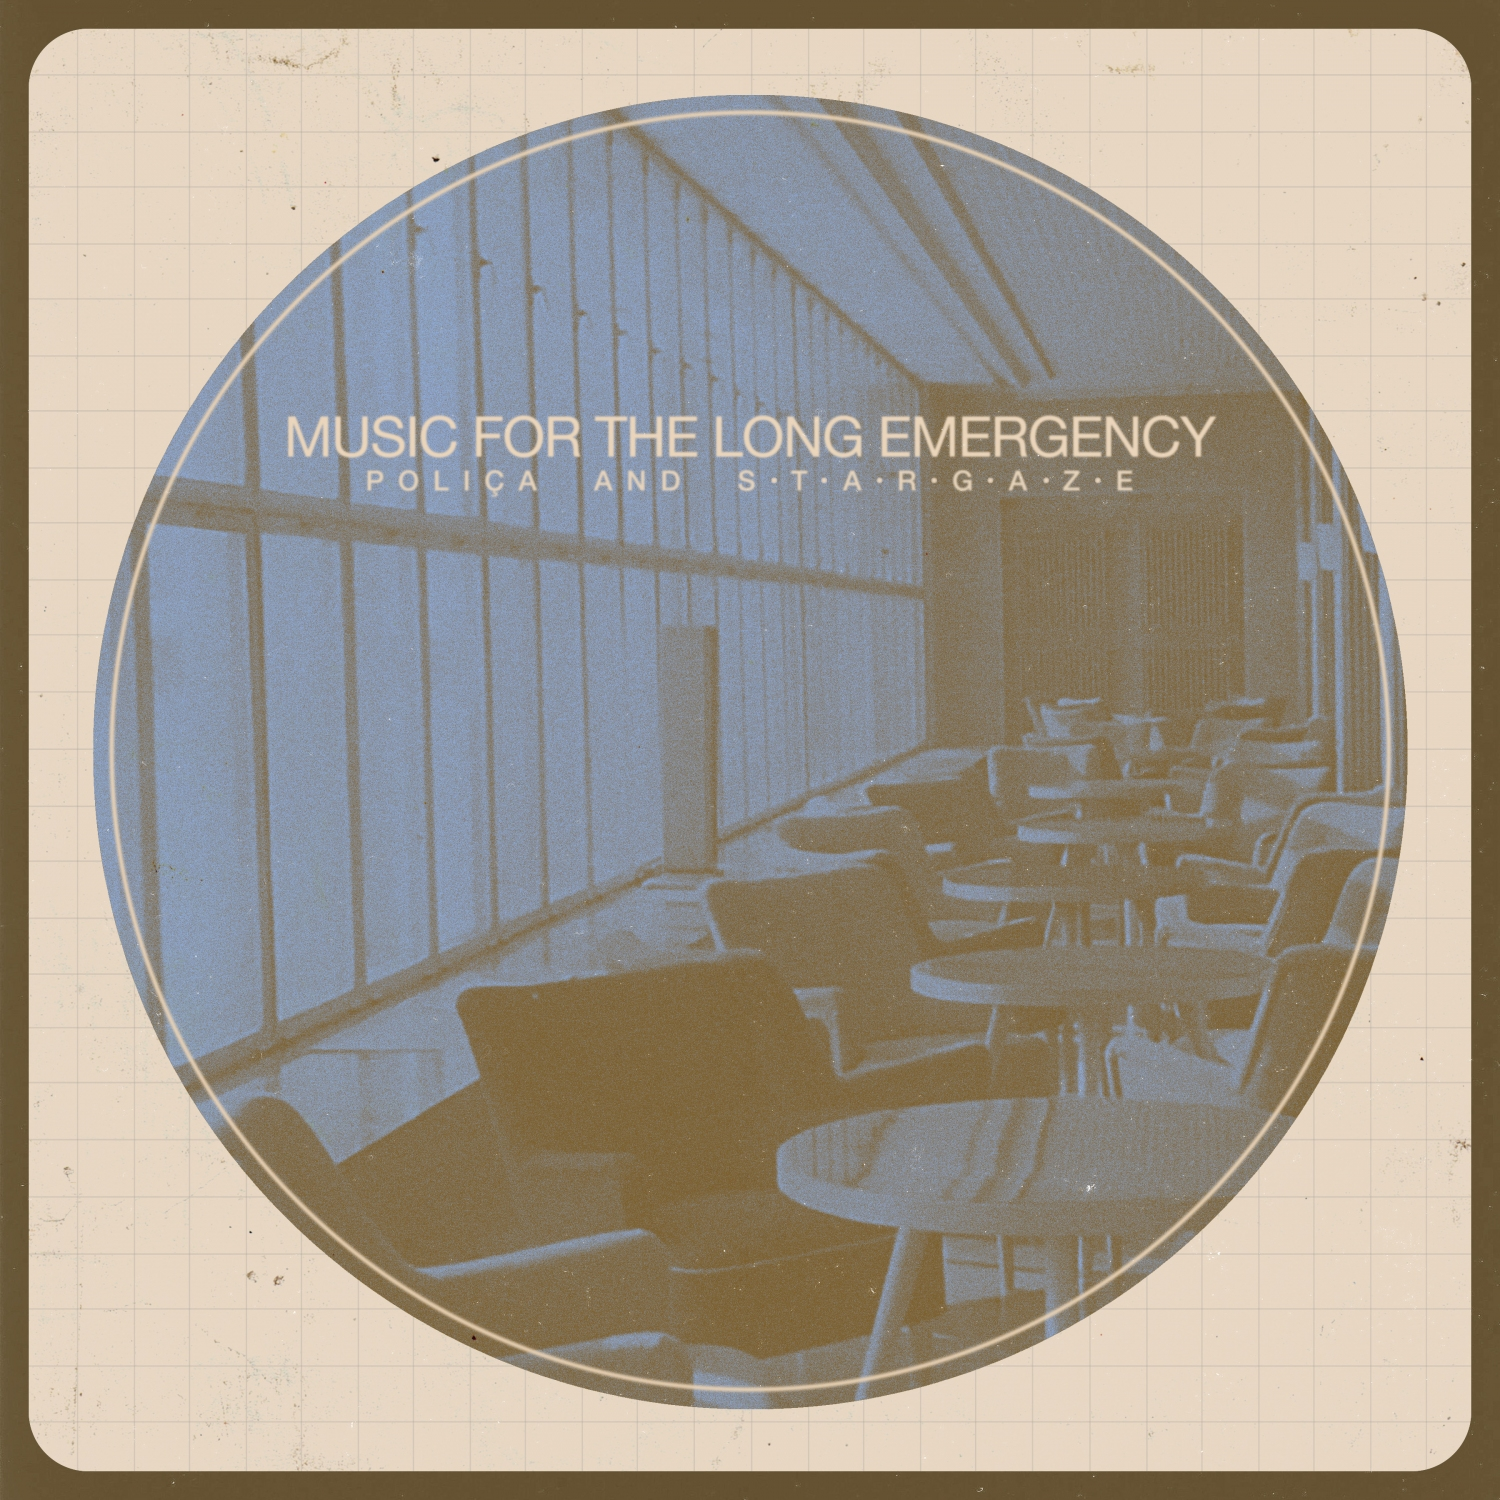 Image of POLIÇA and s t a r g a z e – Music for the Long Emergency